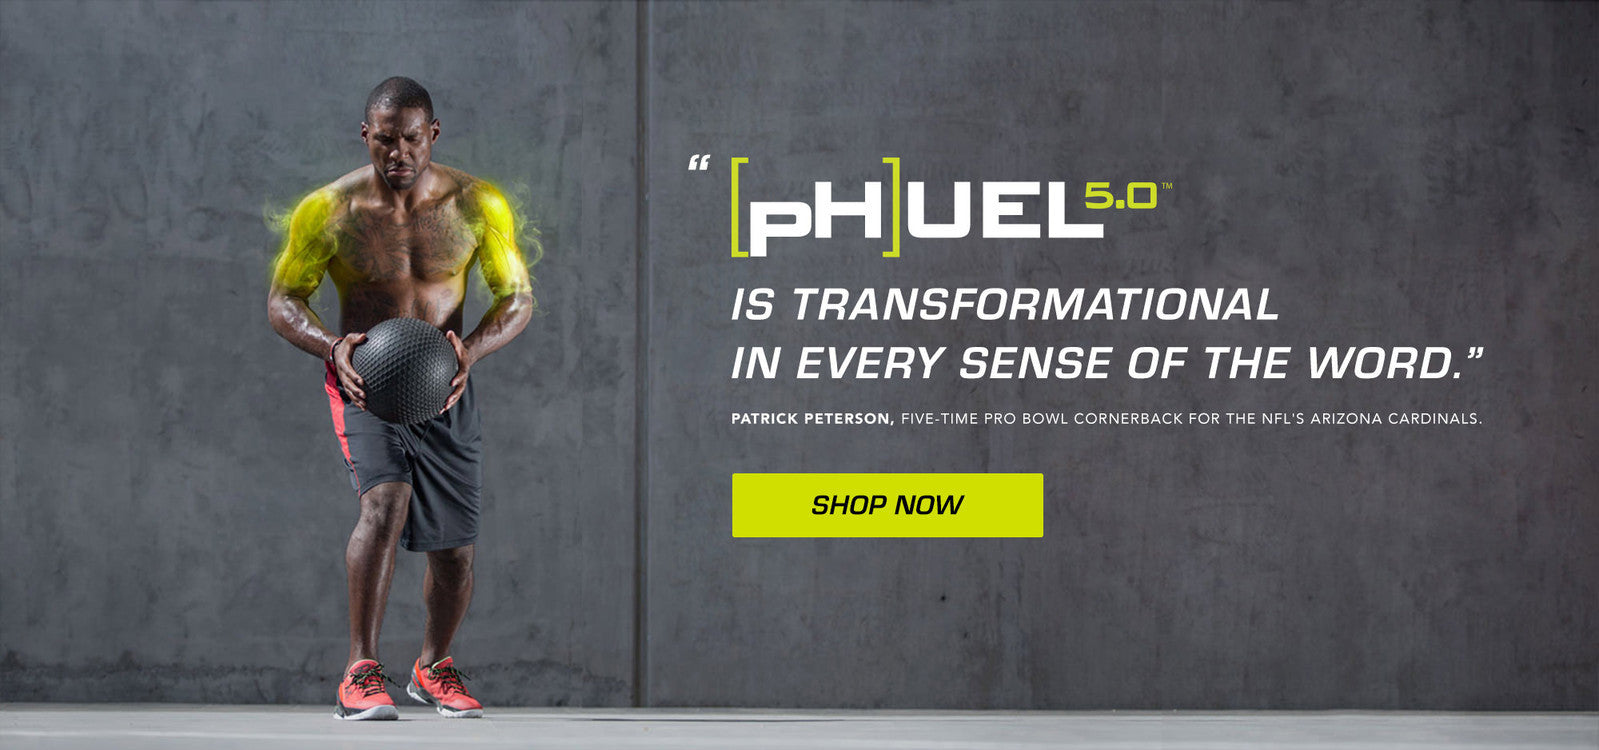 Phuel is transformational in every sense of the word.